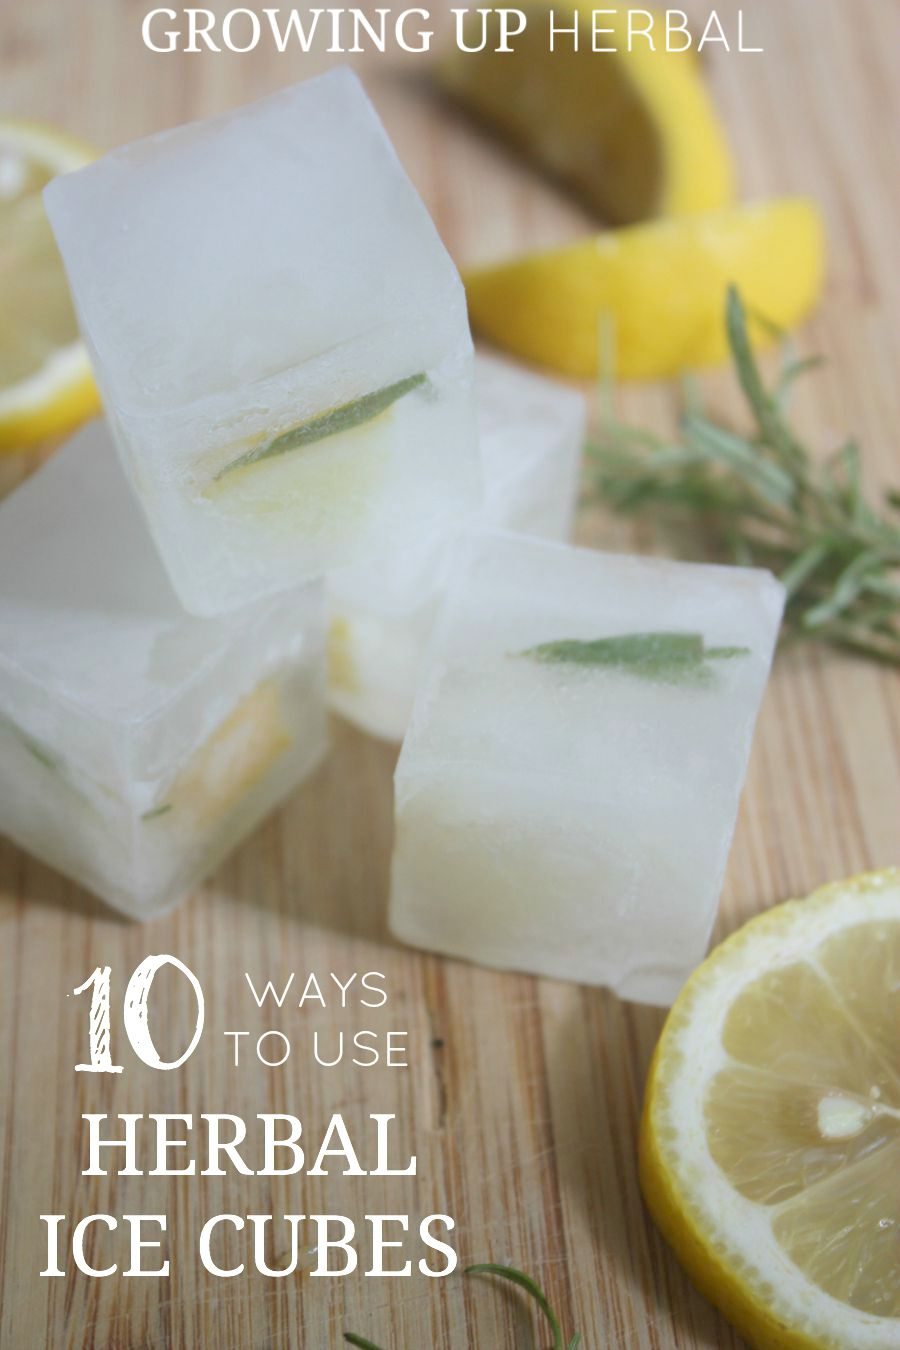 Lemon Rosemary Ice Cubes | Growing Up Herbal | Pretty up any glass of water with these easy to make Lemon Rosemary Ice Cubes!